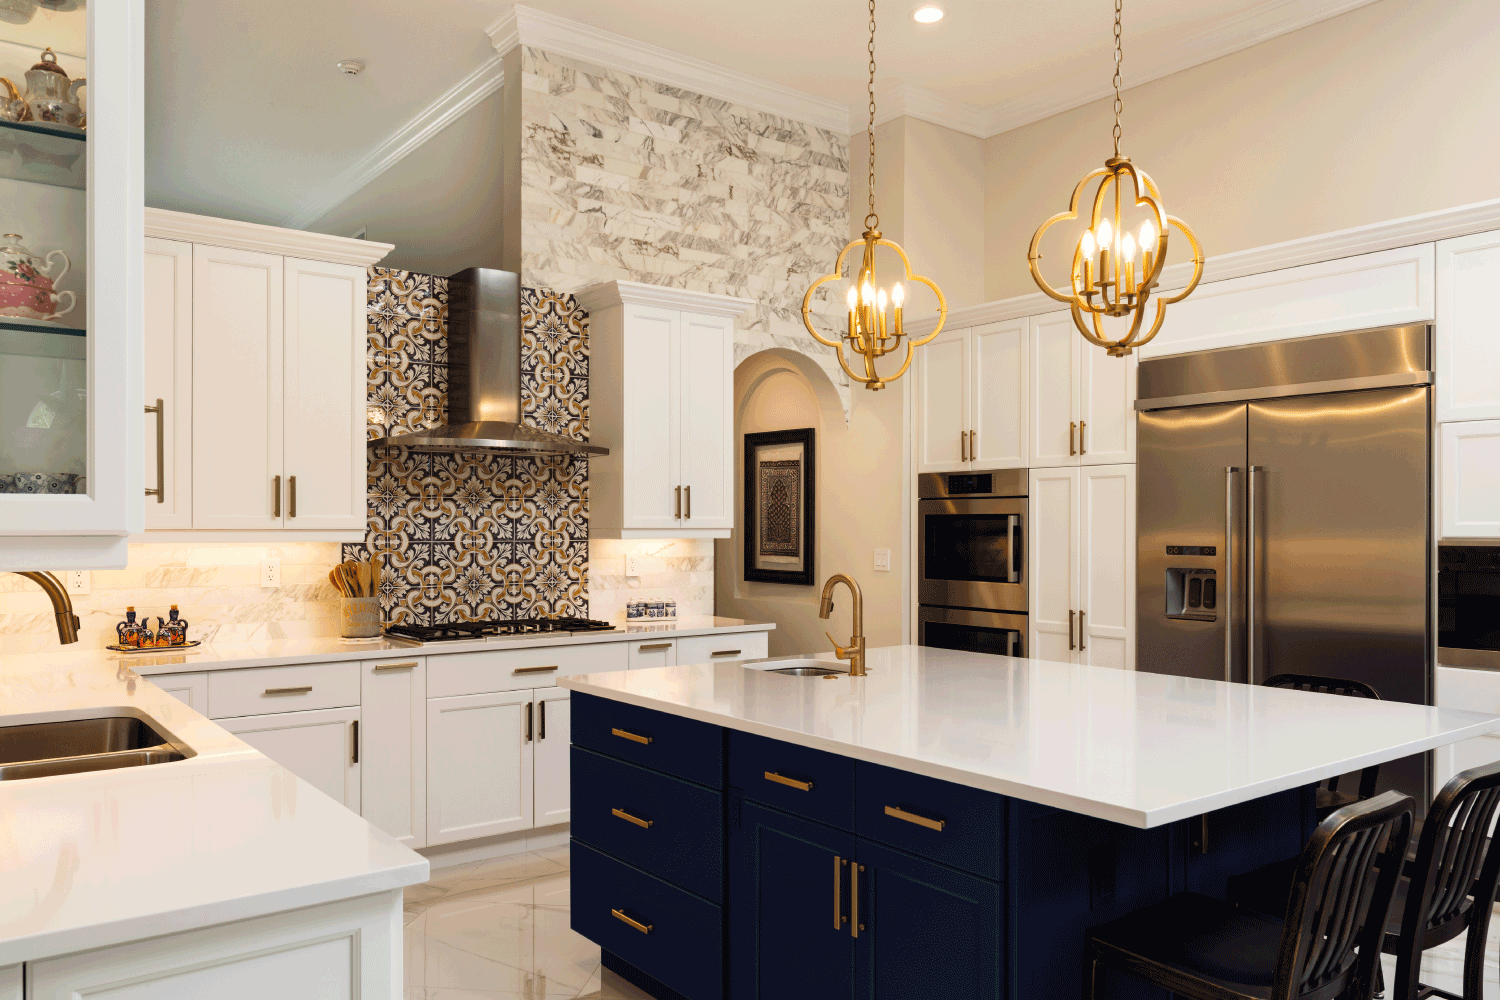 Beautiful luxury estate home kitchen with white cabinets. navy luxury concept